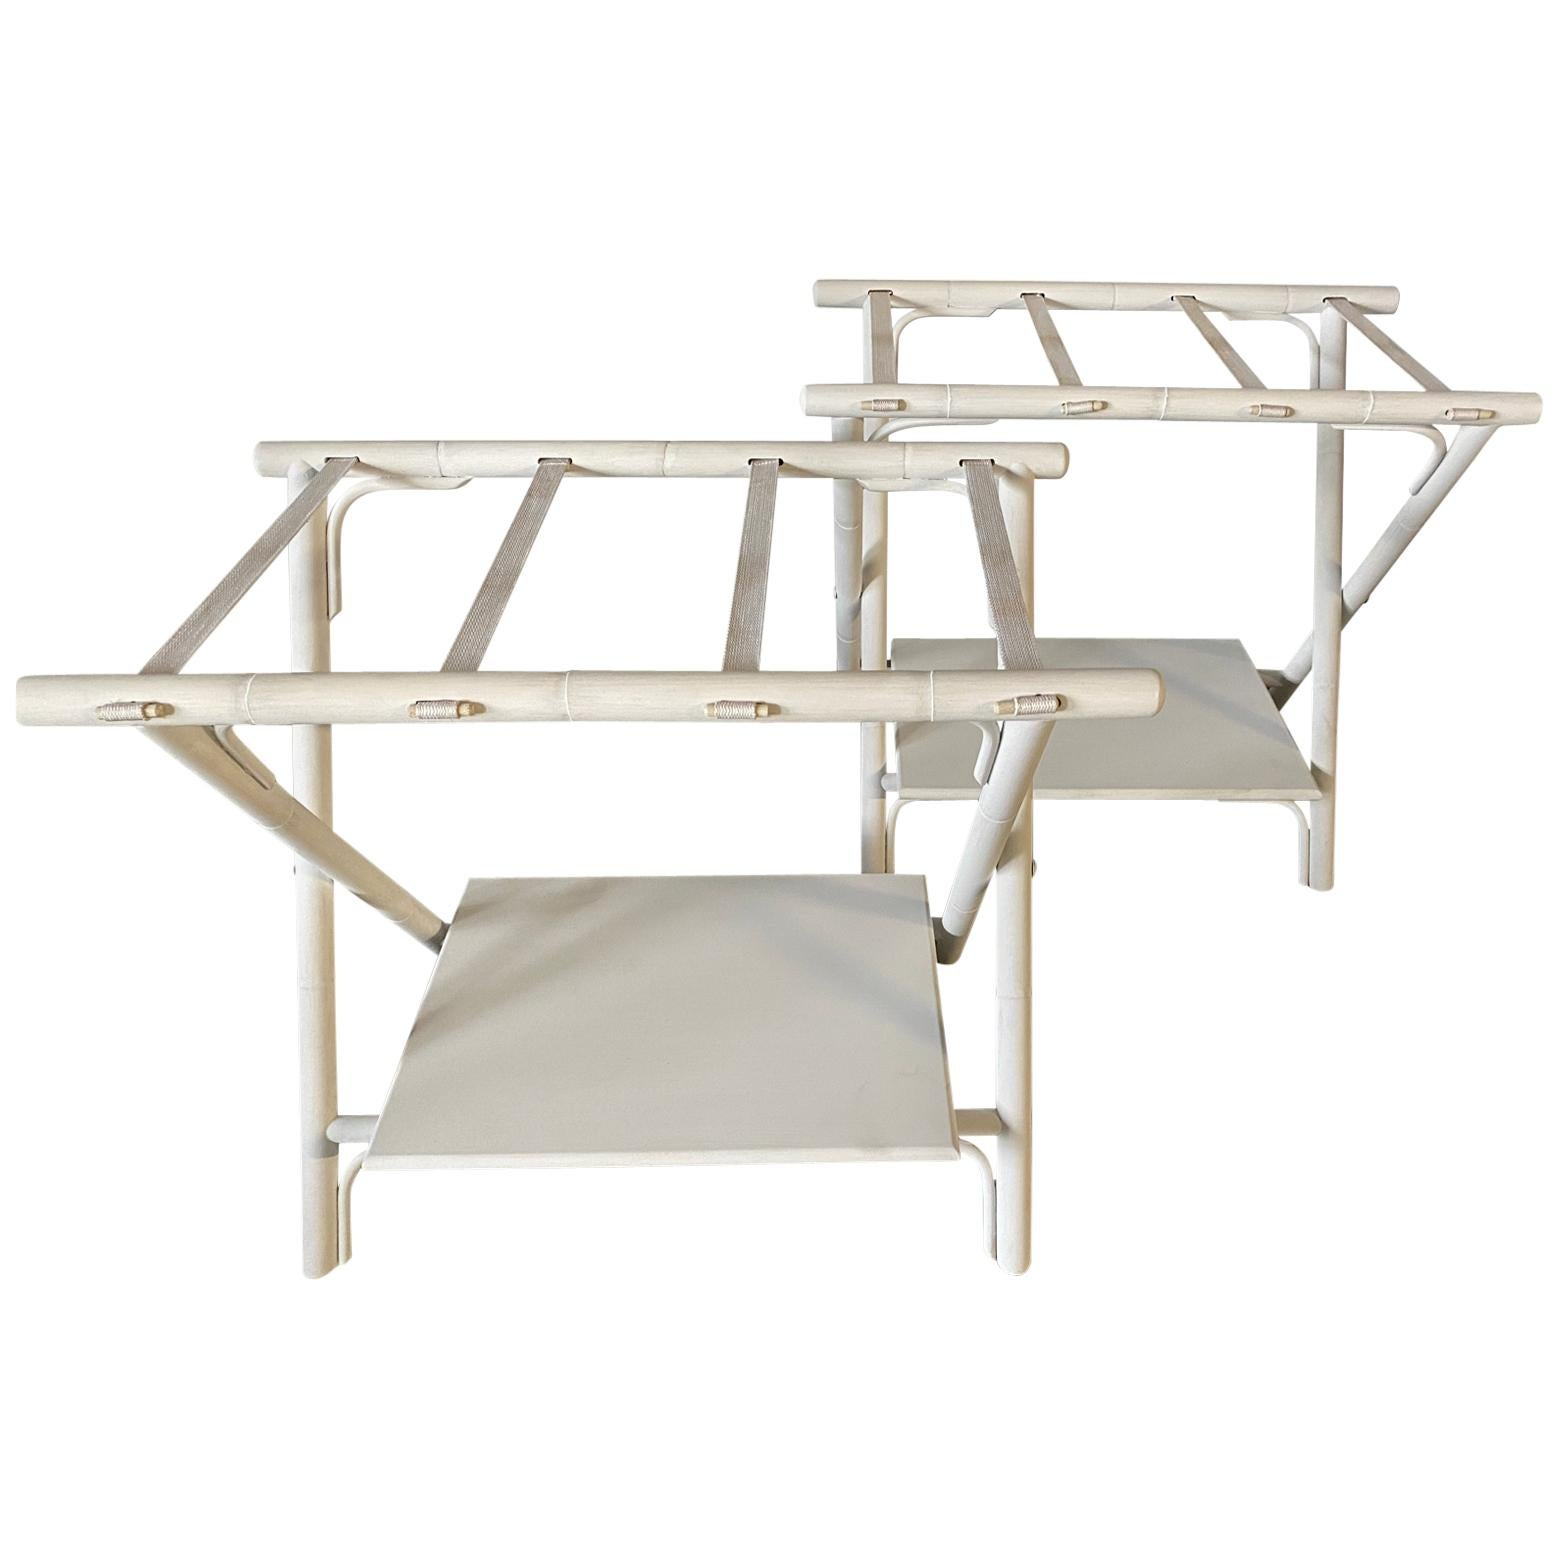 Painted Faux Bamboo Luggage Racks, Sold Singly